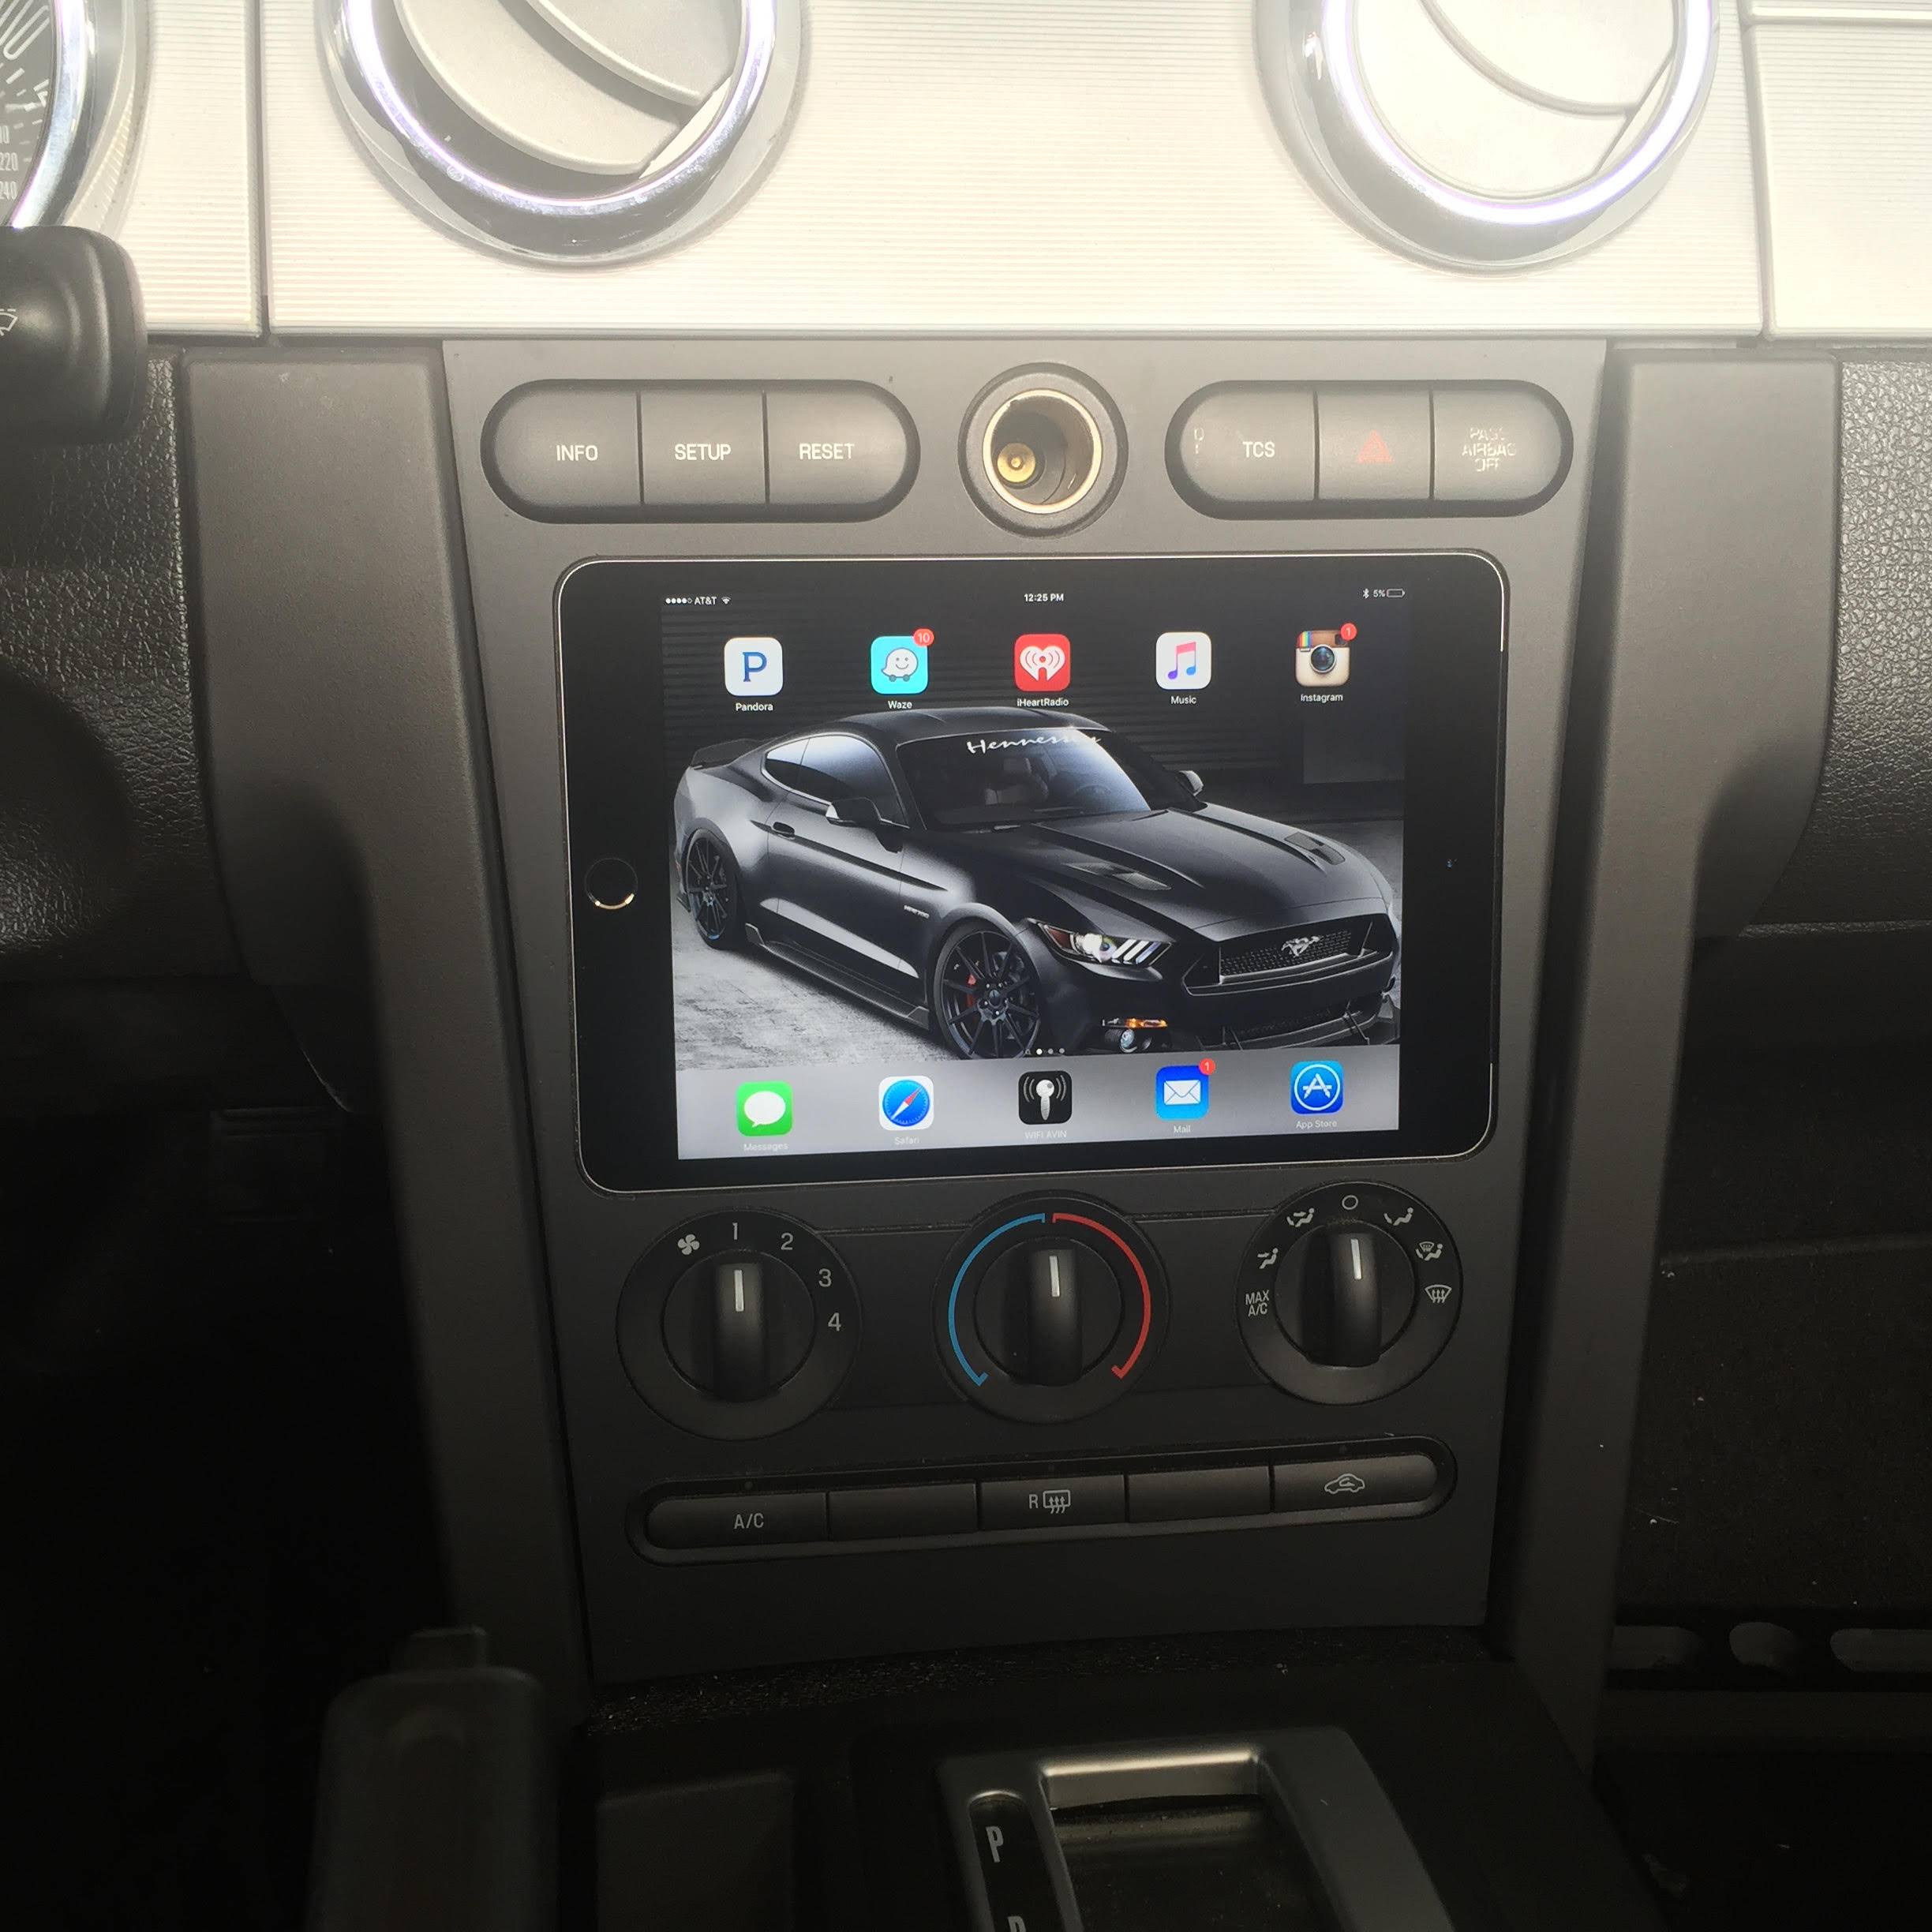 05 09 ford mustang ipad mini nexus 7 dash kit keyboard keysfo Gallery